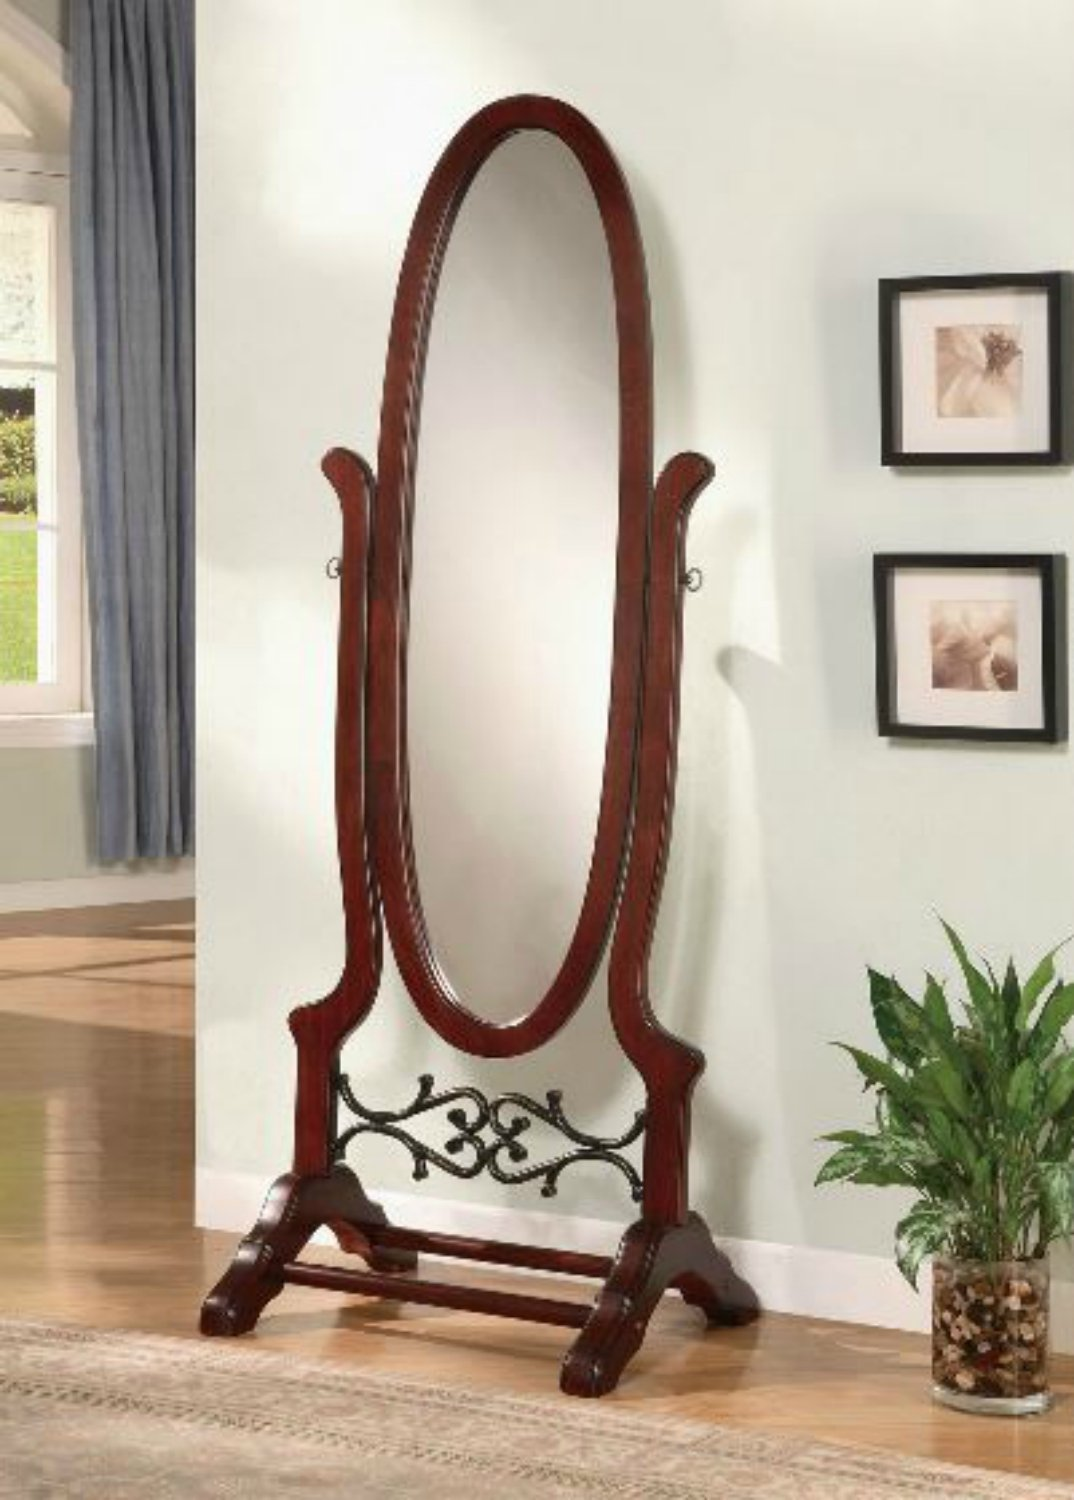 Wildon Home Cherry Full Length Standing Seatac Cheval